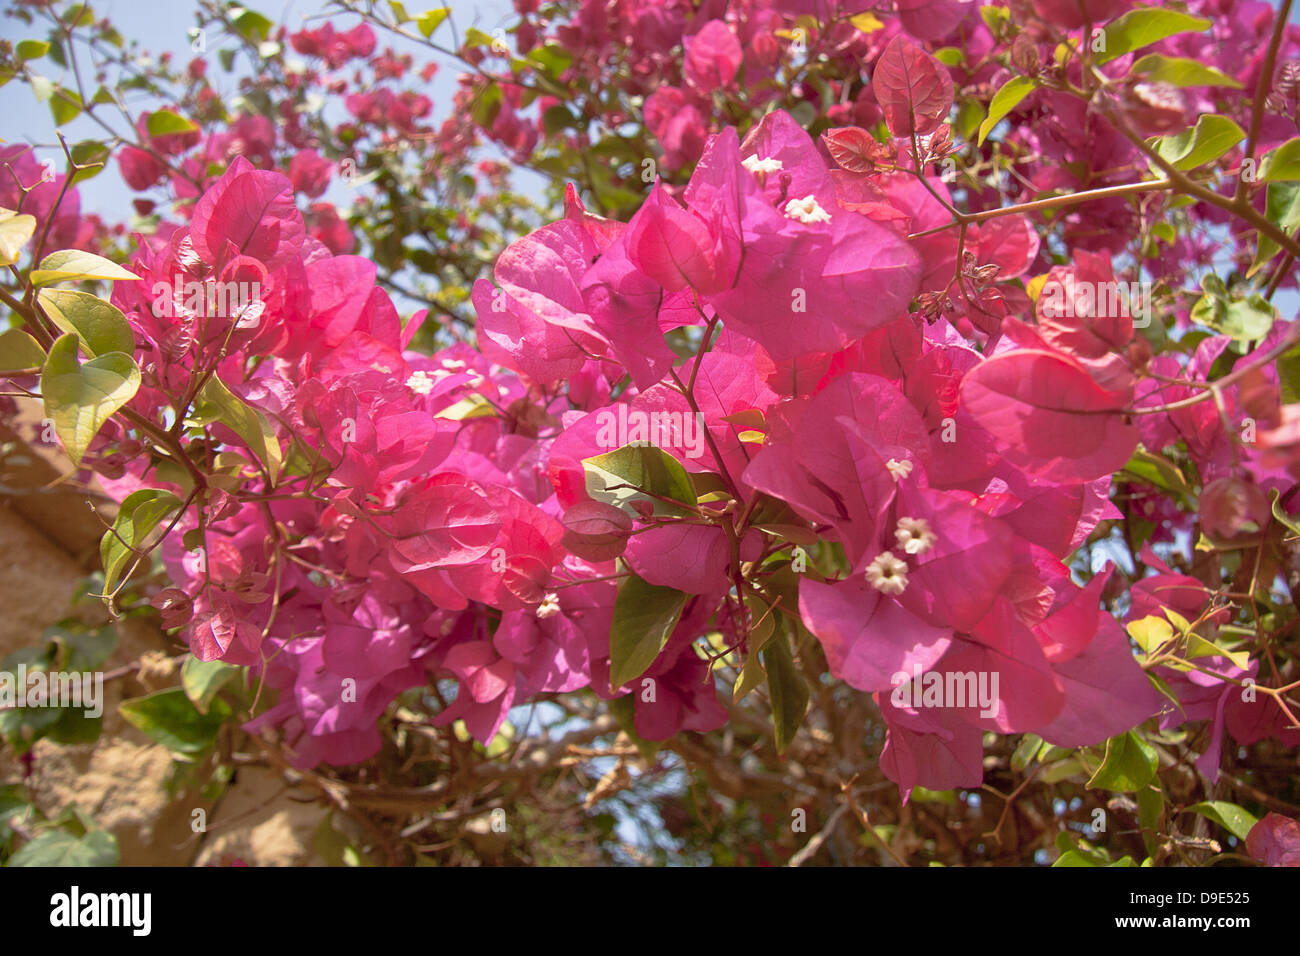 Pink Flowers On The Bush At Summer Day Stock Photo 57474317 Alamy